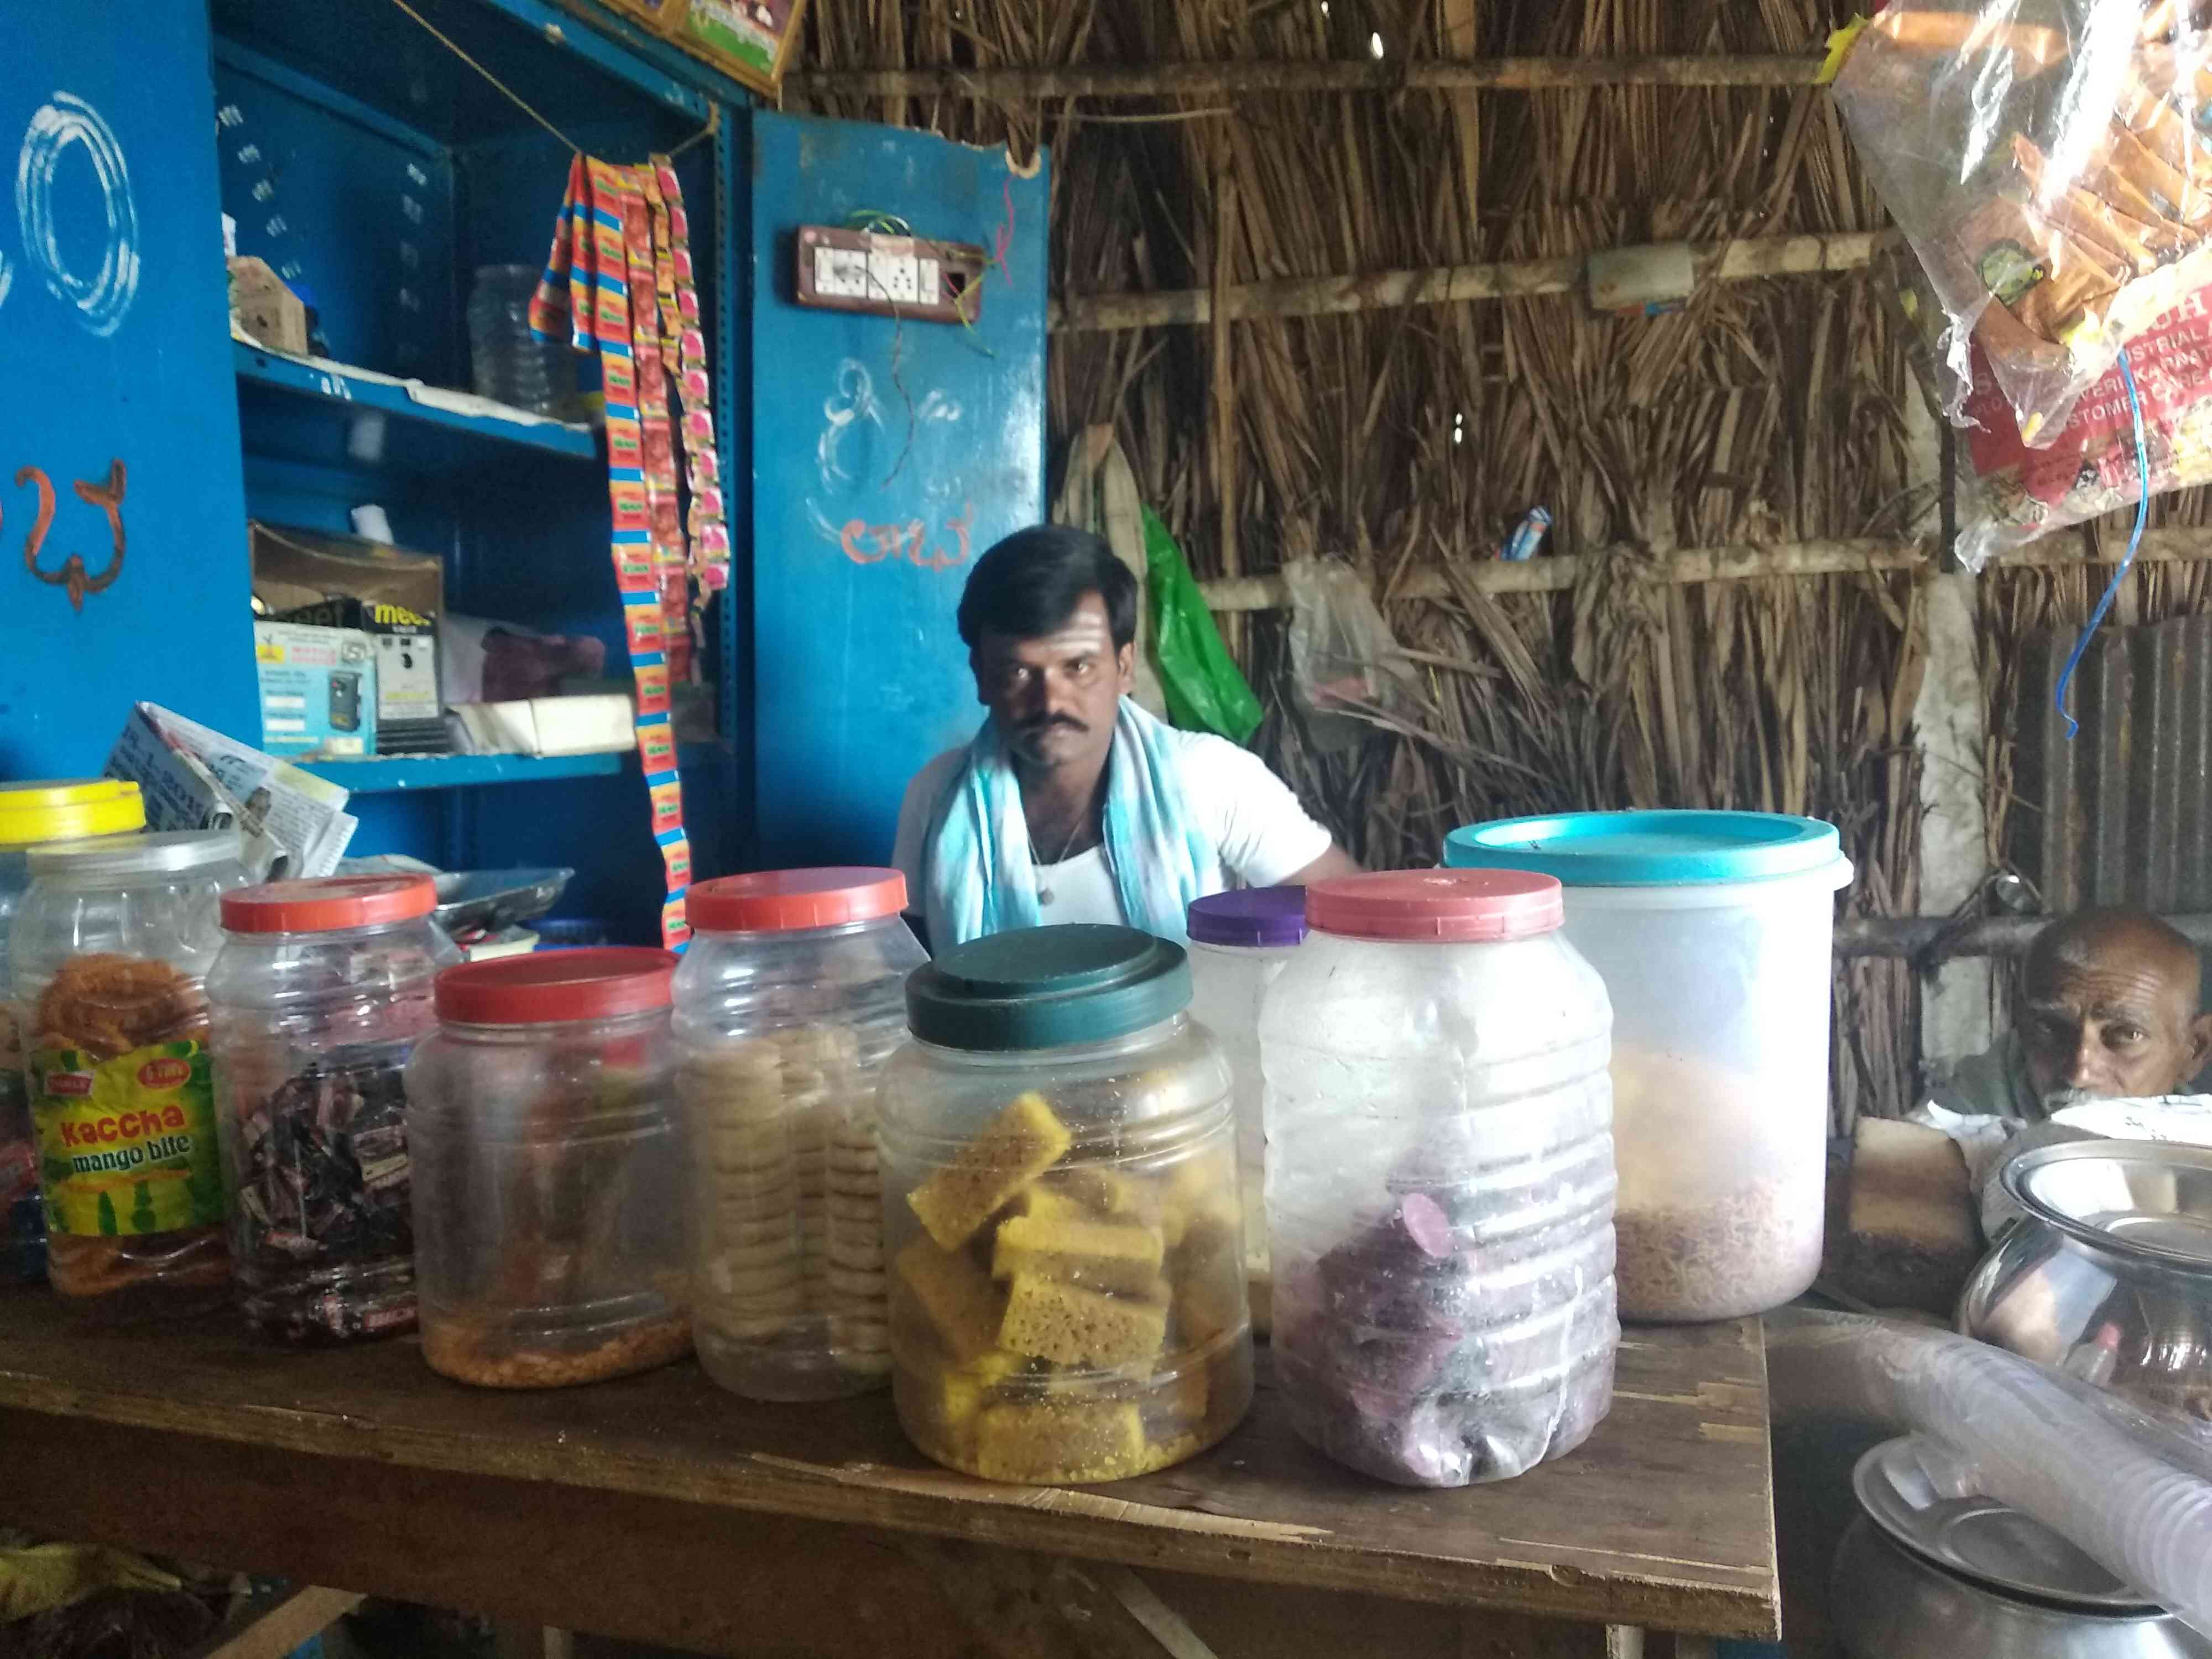 Tea shop owner Ganesh, a member of the dominant Lingayat community, in his shop in Nandihalli village.